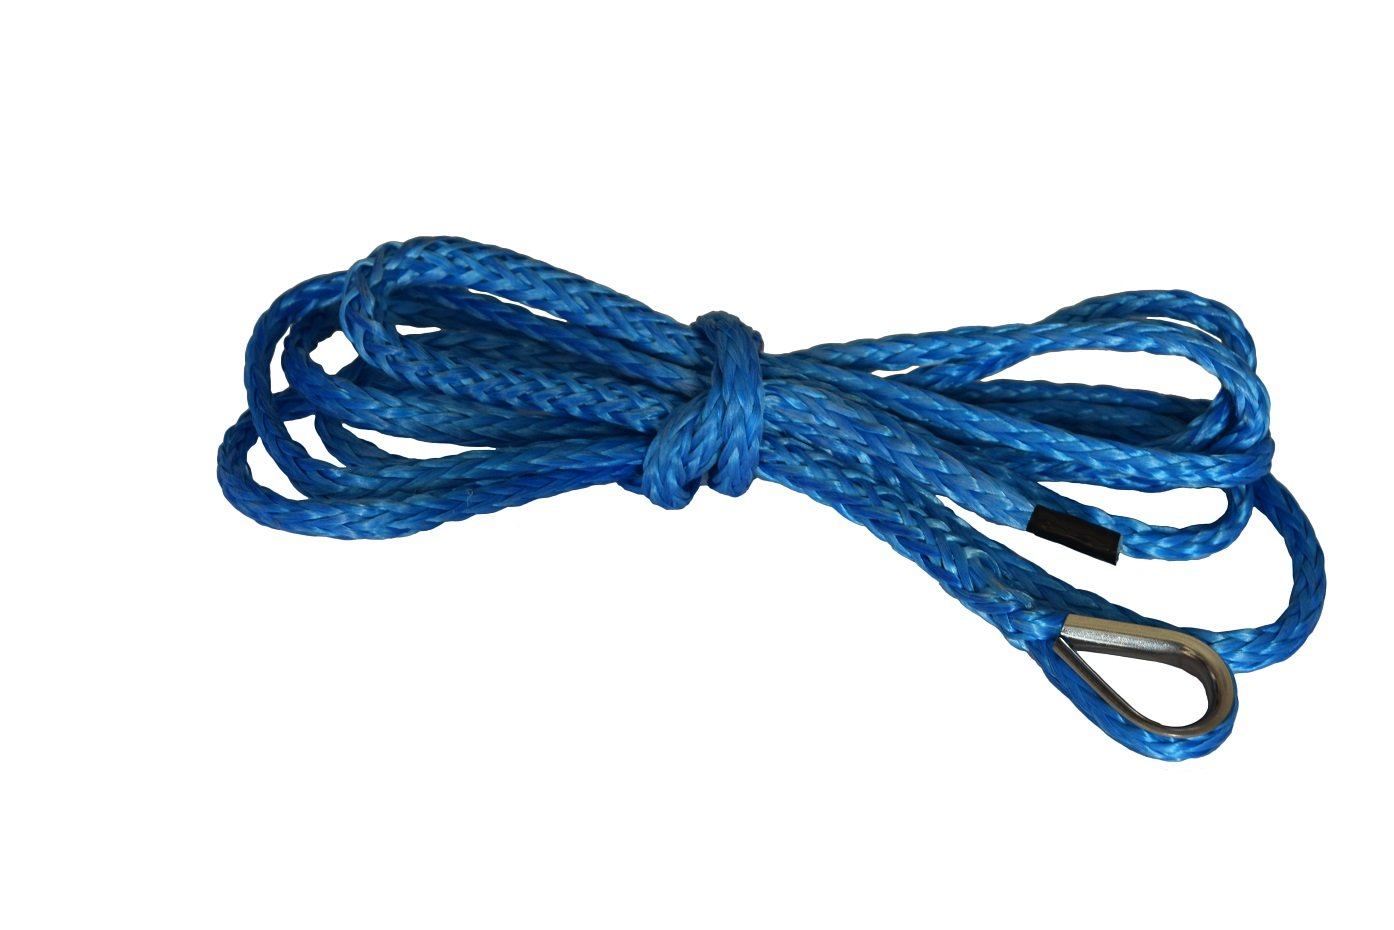 Blue 1//4*10ft Synthetic Plow Lift Rope,Synthetic Winch Rope,ATV Winch Cable,ATV Snow Plow LIft Rope 6500lbs